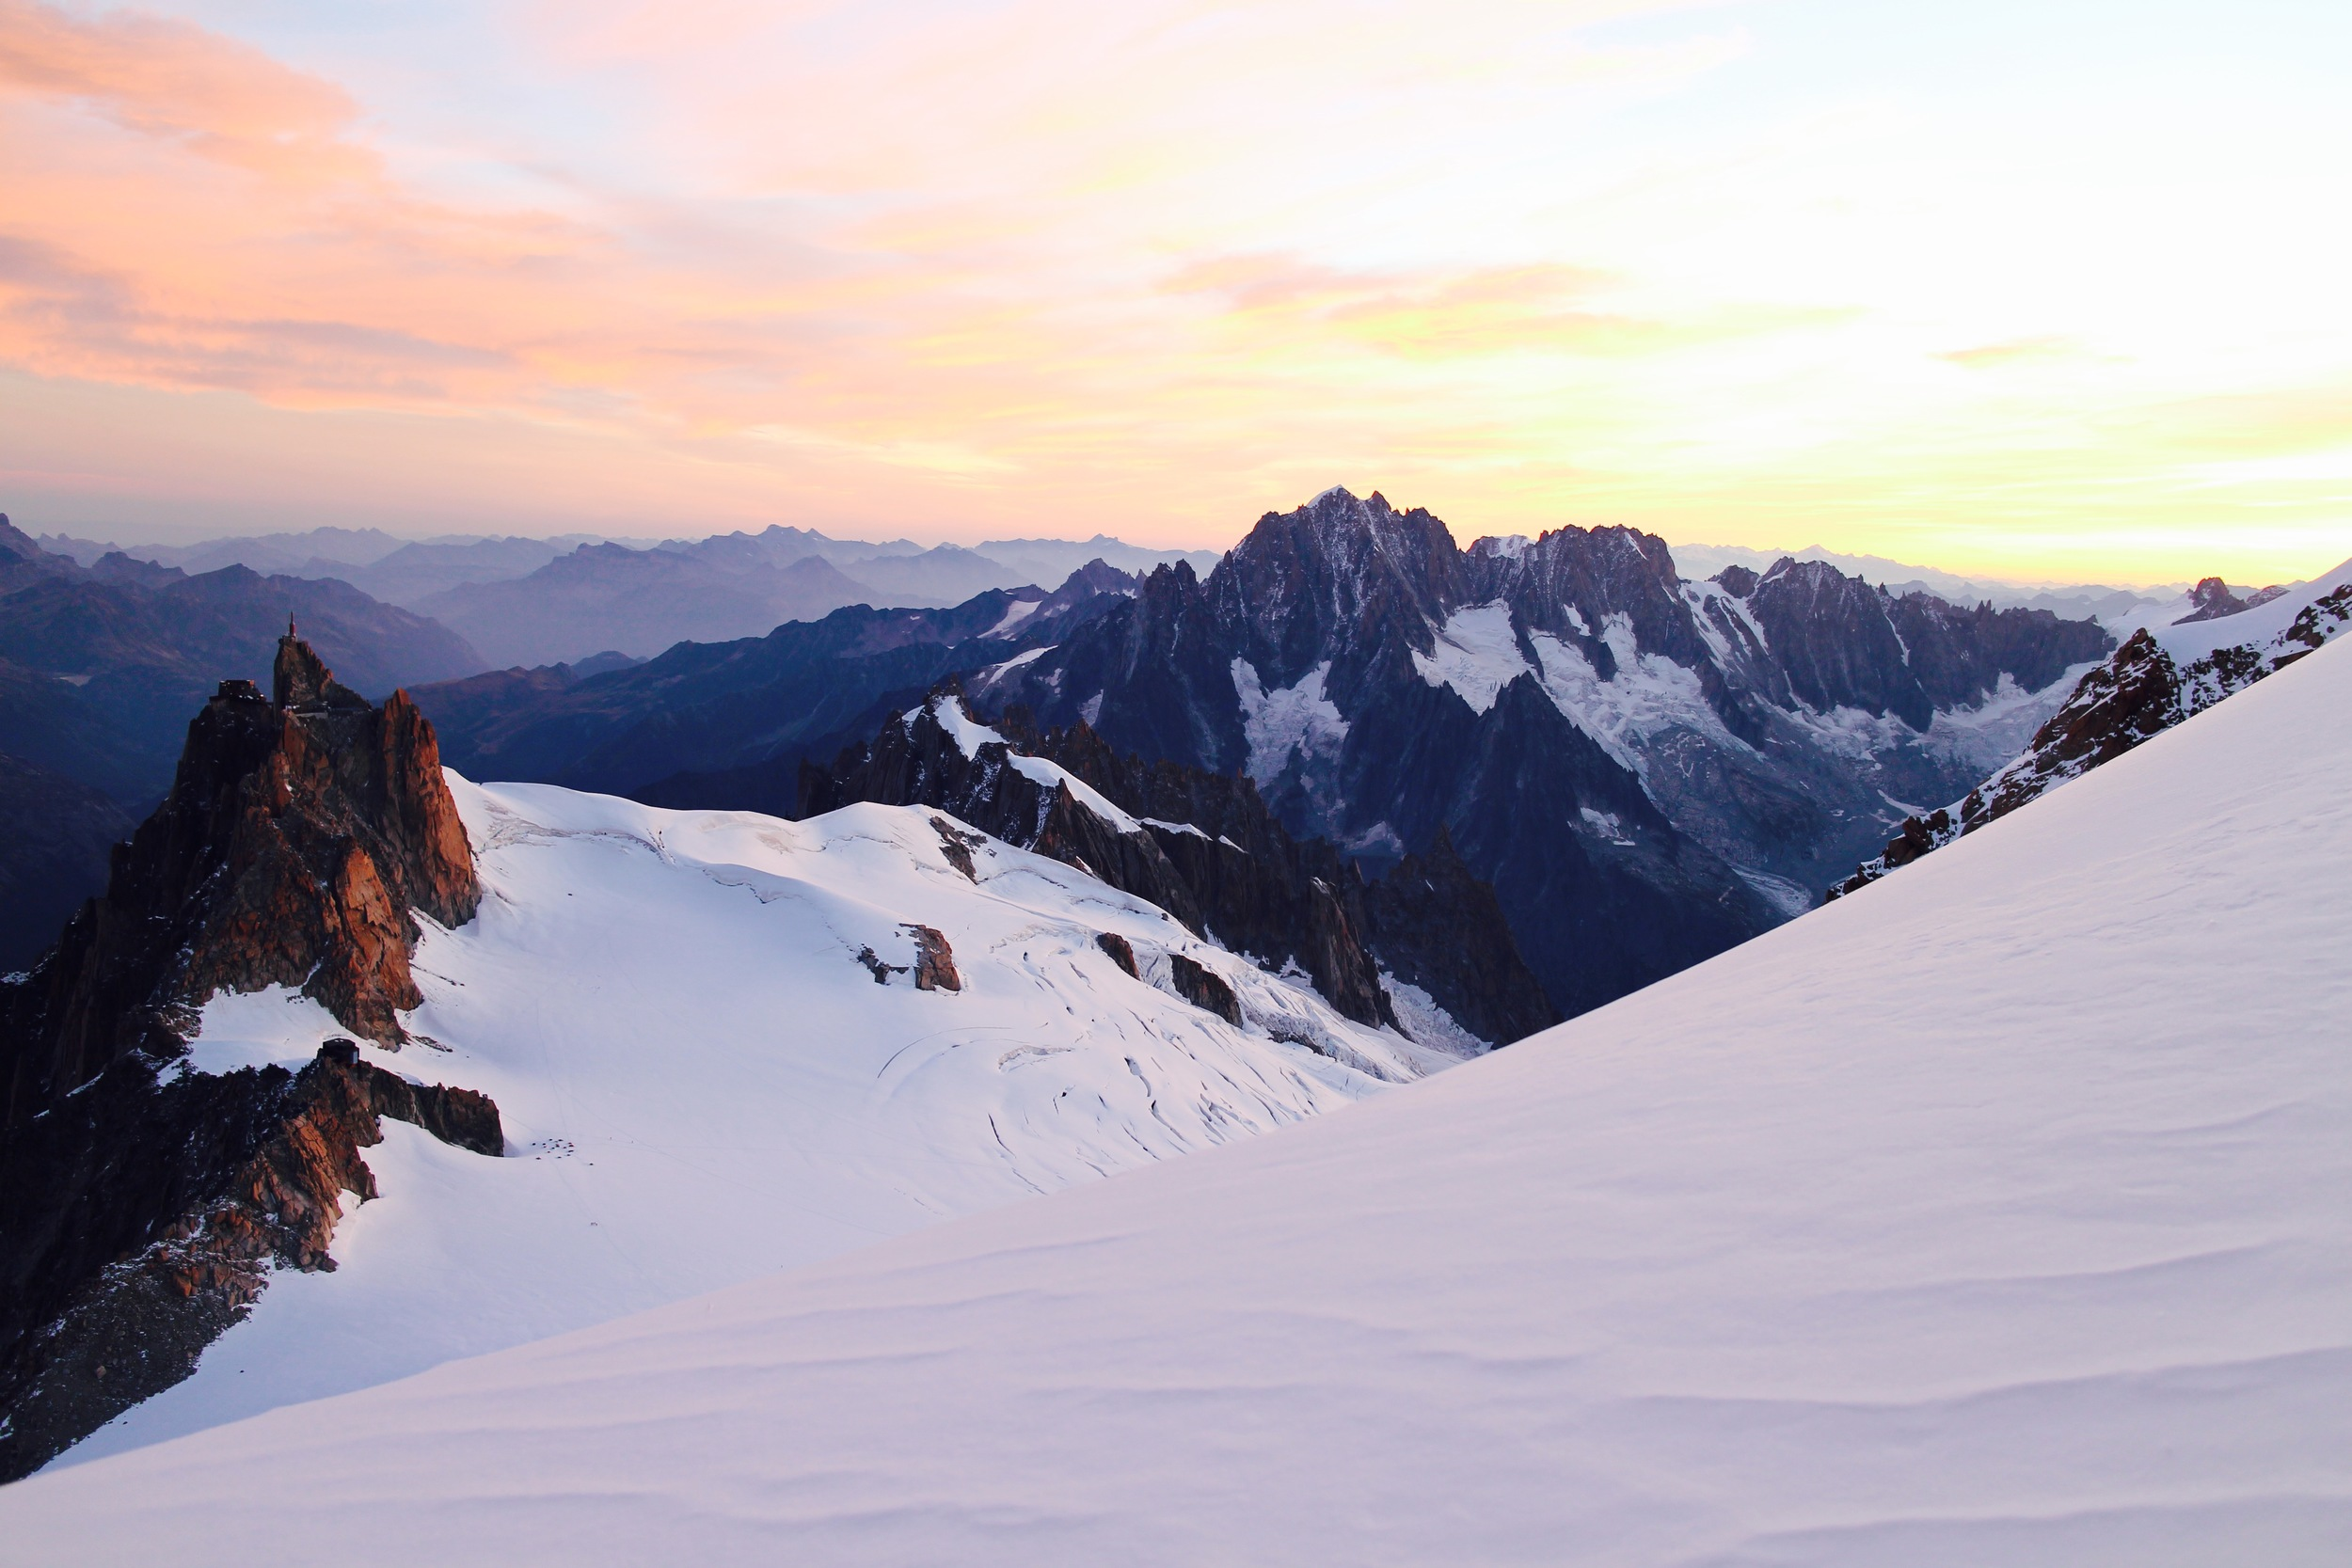 French Alps/Are these delightful moments to live in thoughtlessly or the golden moments of a final sunset?